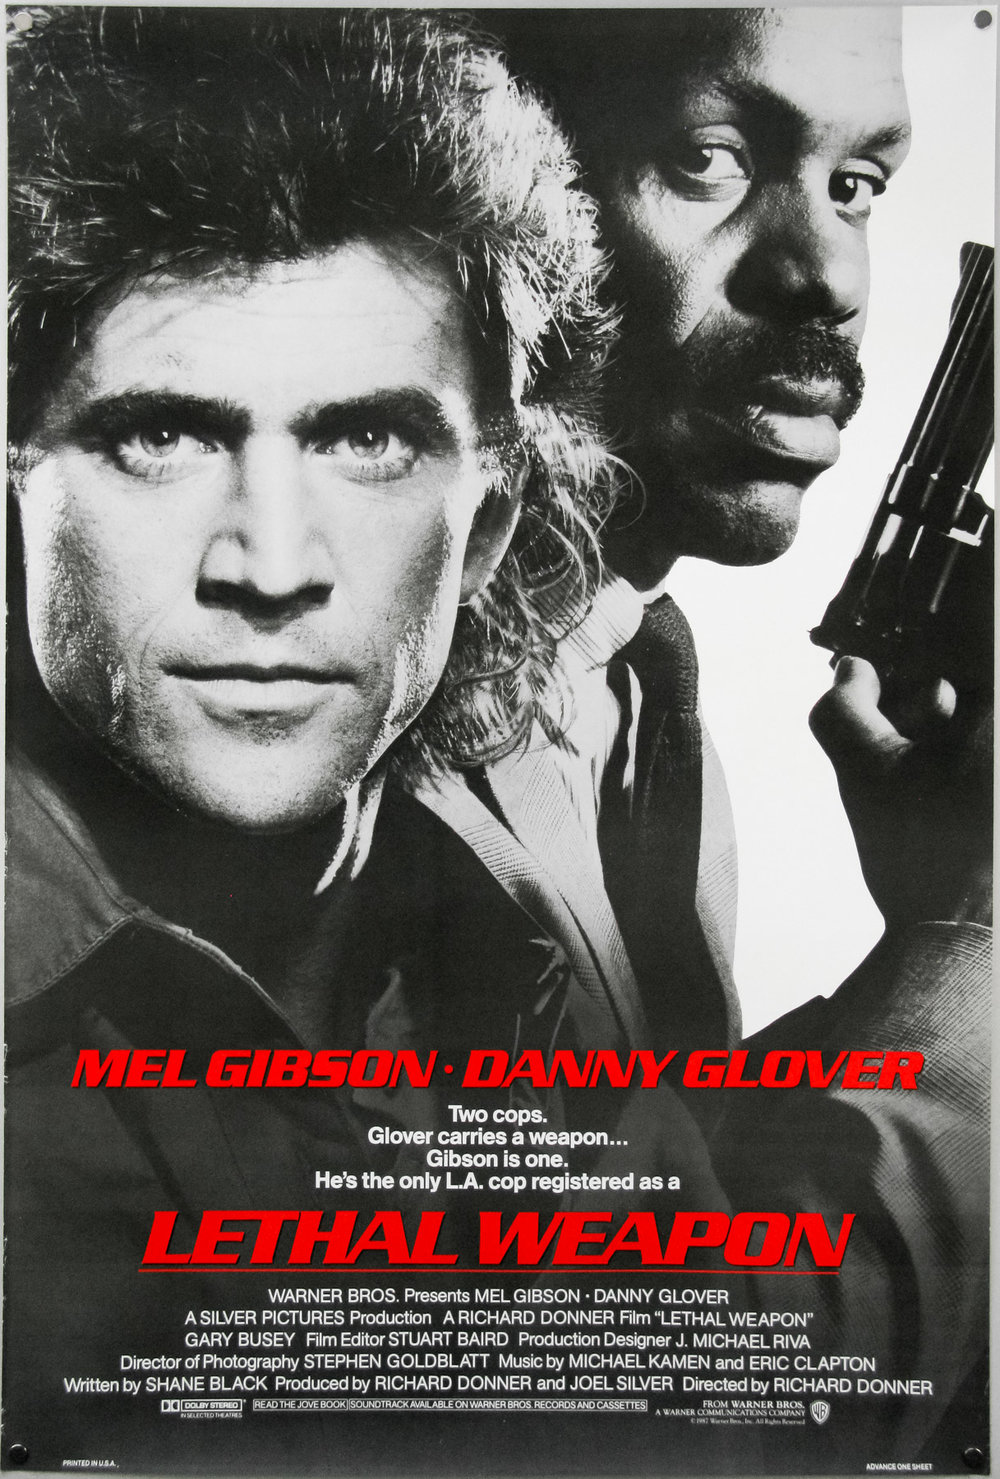 LethalWeapon_onesheet_advance_USA-1 (1).jpg